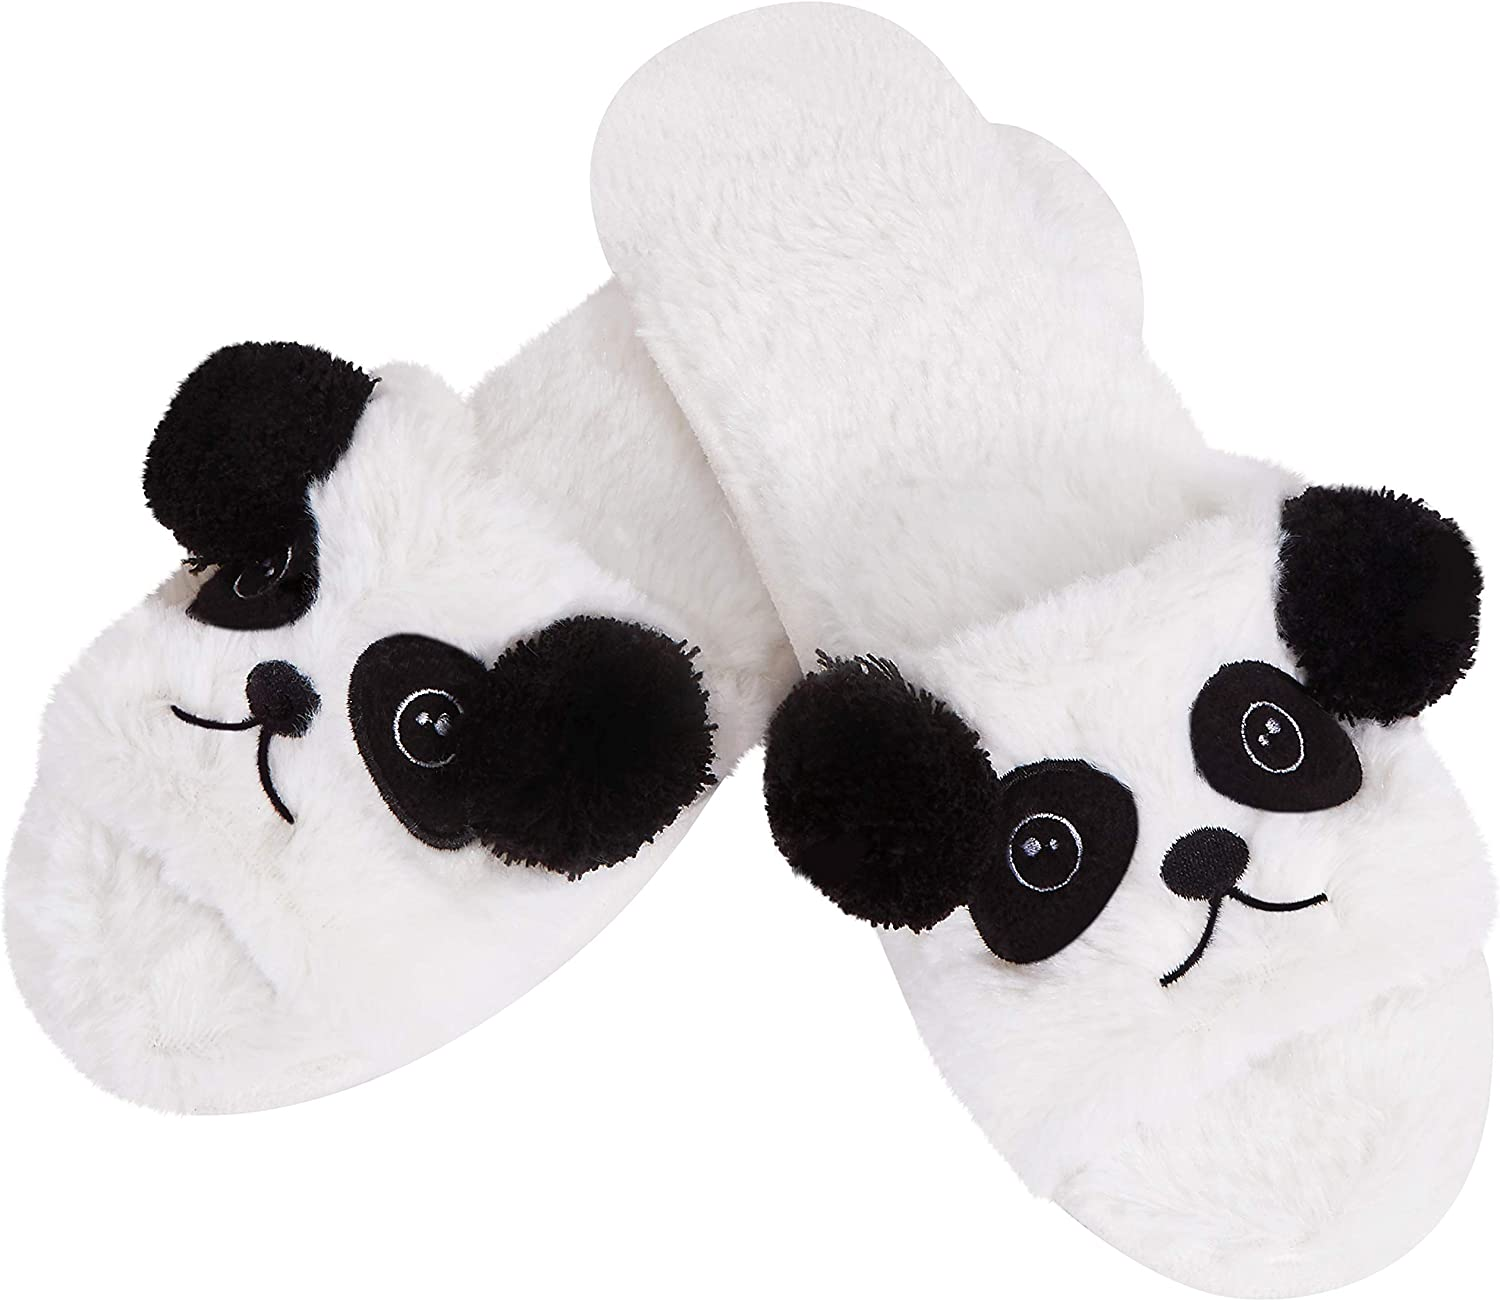 Sanfiago Open Toe Cute Panda Slippers for Women Warm Fluffy Fur Memory Foam Shoes for Girl Non-Slip Sole Indoor Outdoor Gift for Women on Birthday Valentine's Day